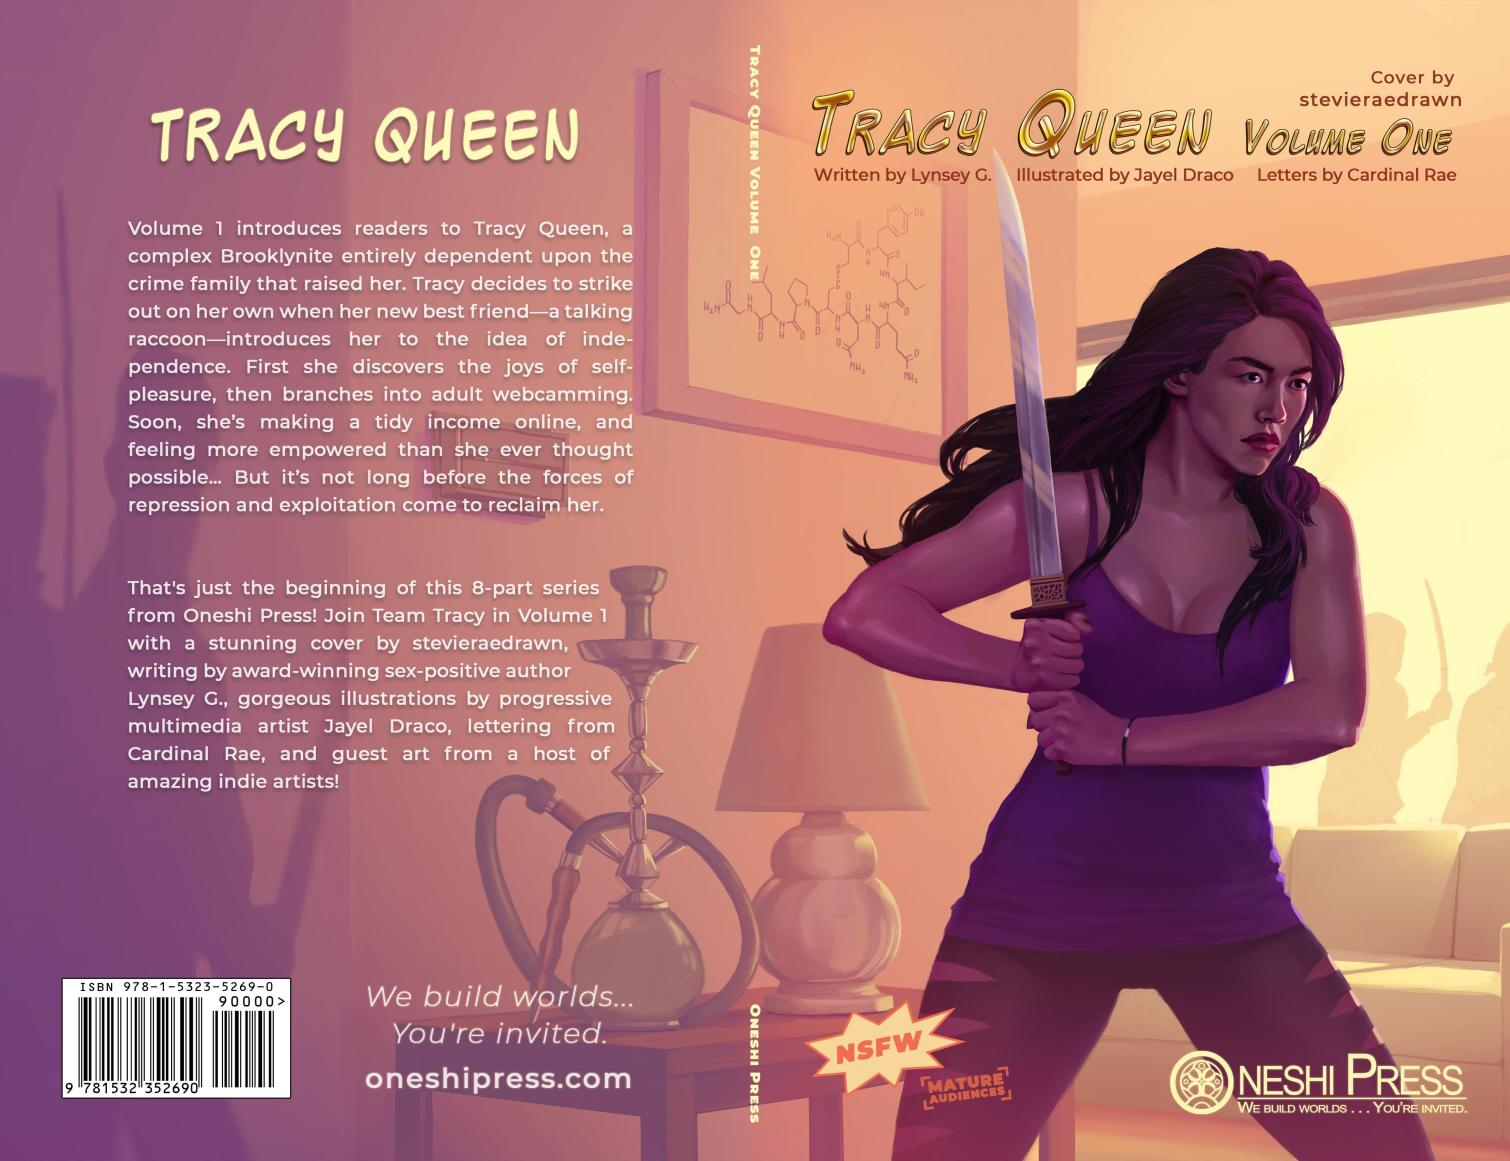 tracy queen volume 1 cover reveal oneshi press stevieraedrawn